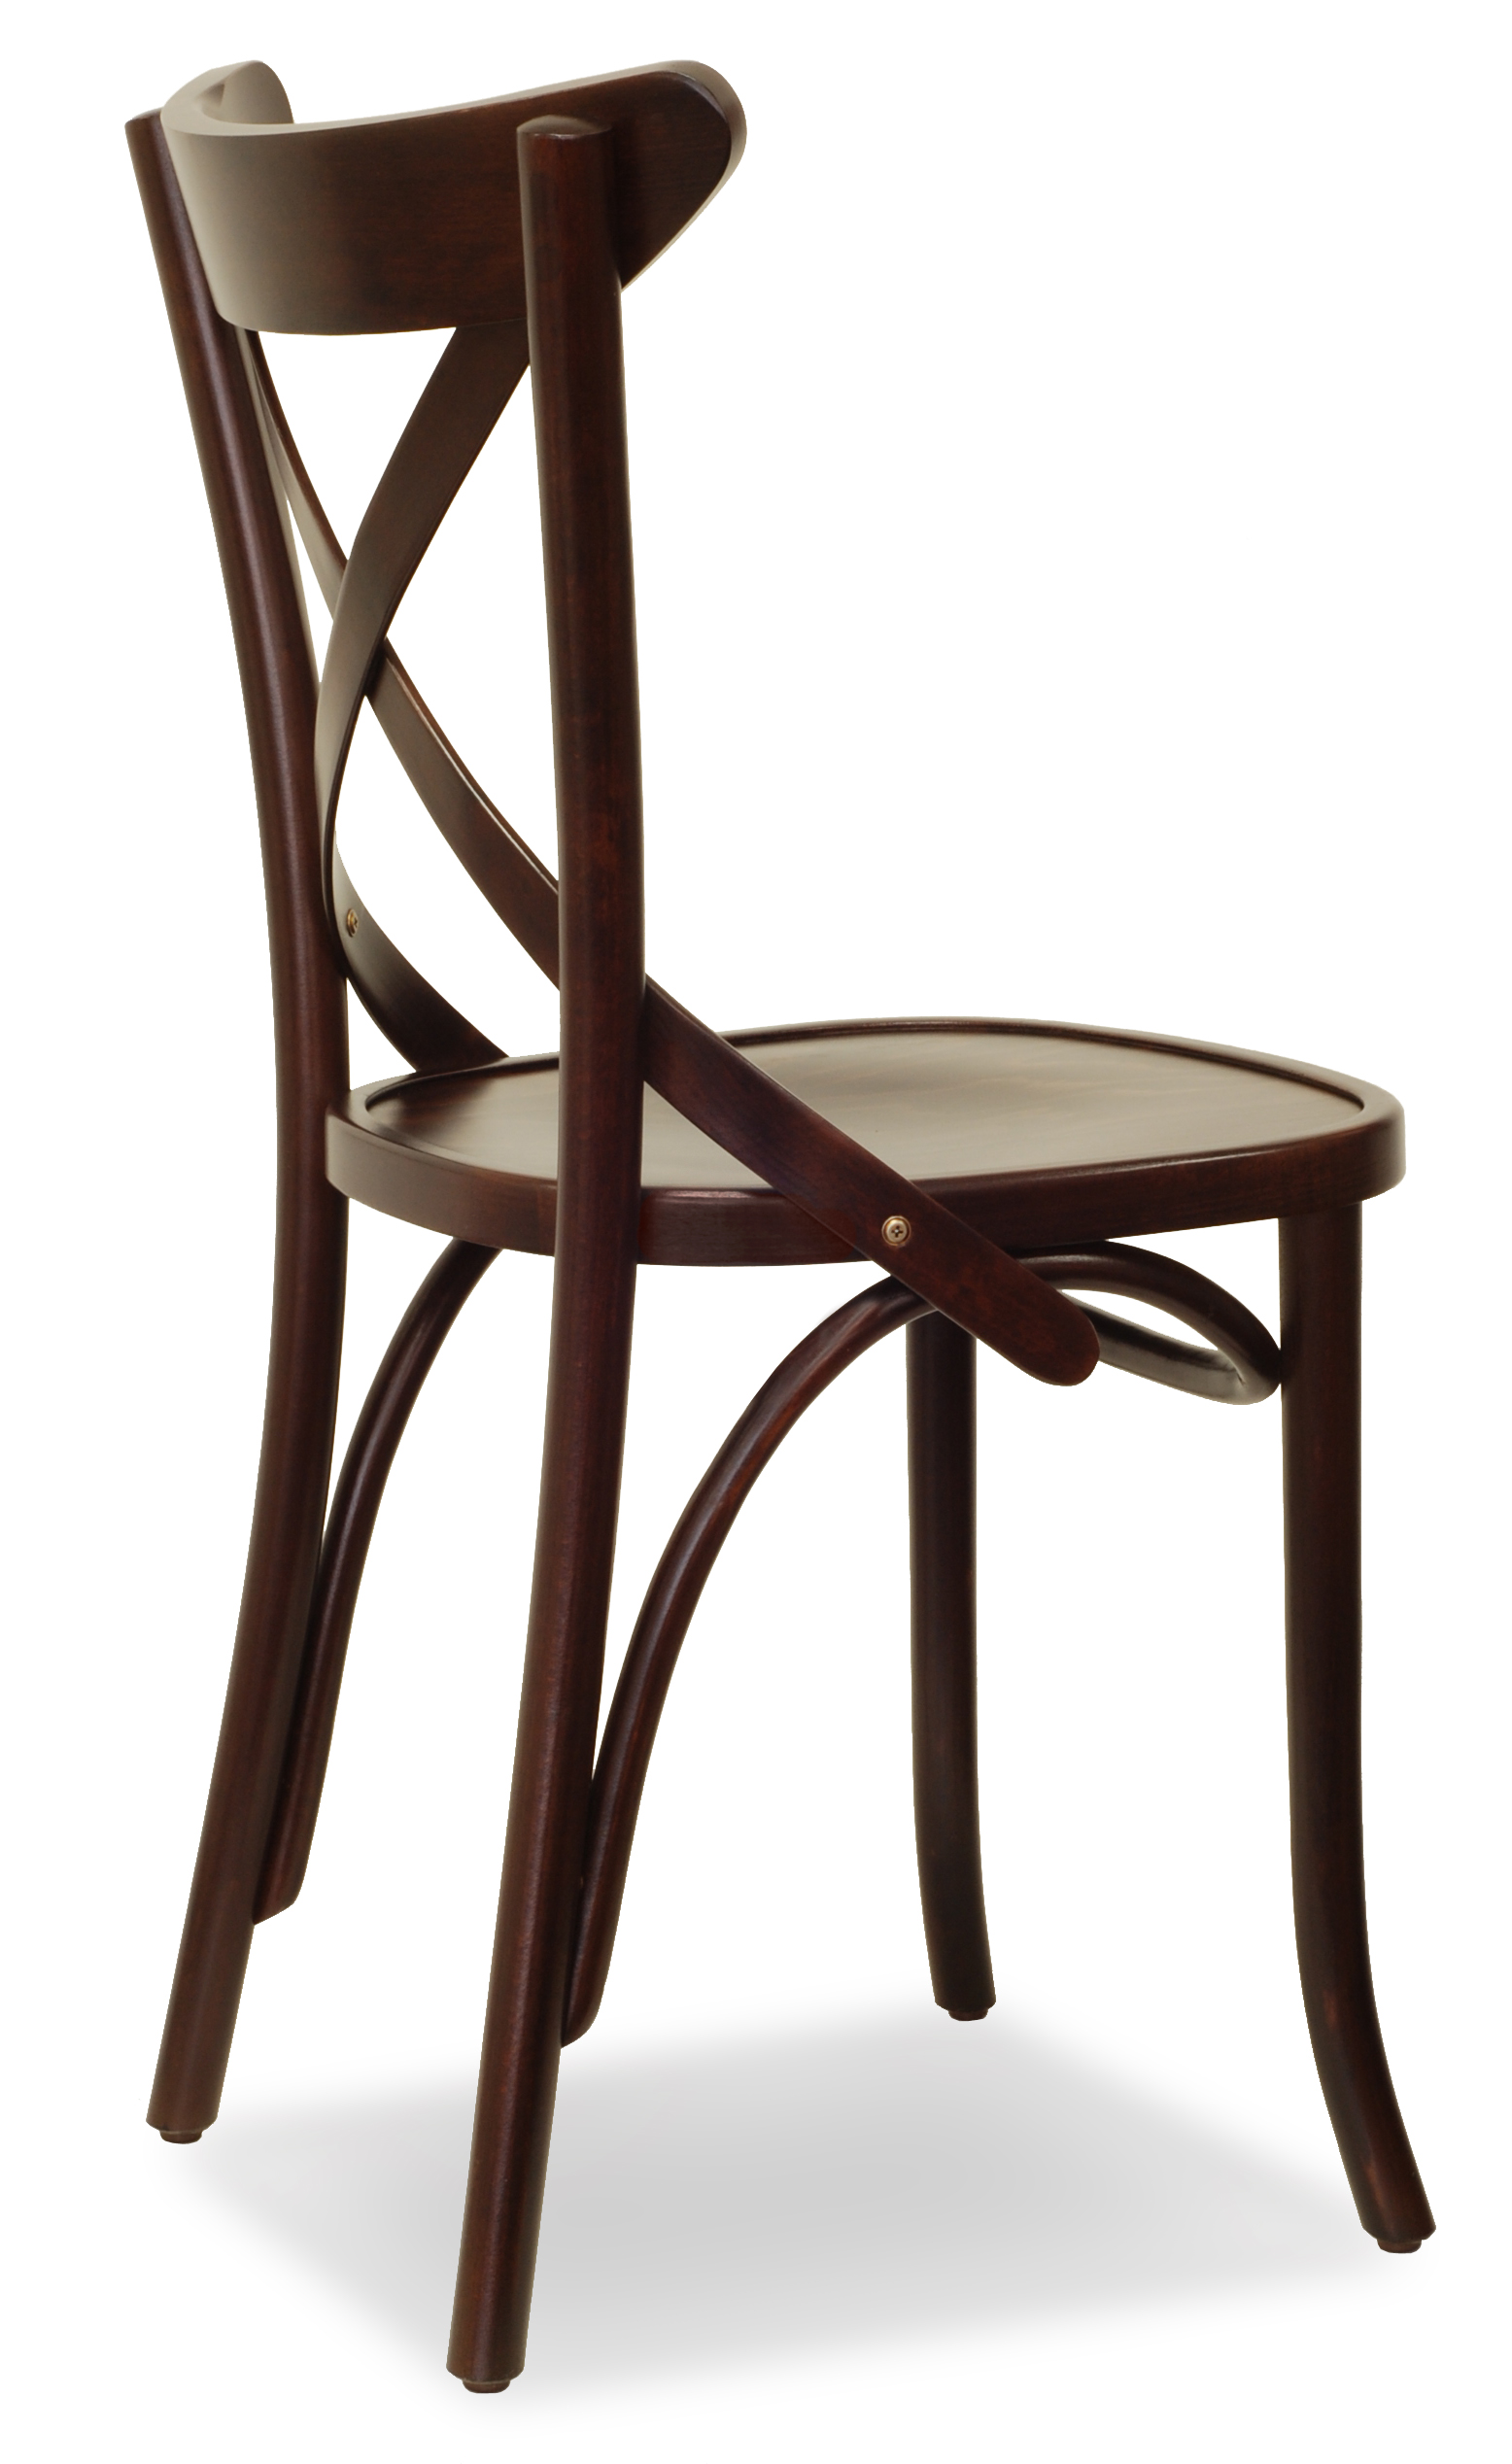 Bon Calvi Is Another Style Of Classic Bentwood Chair